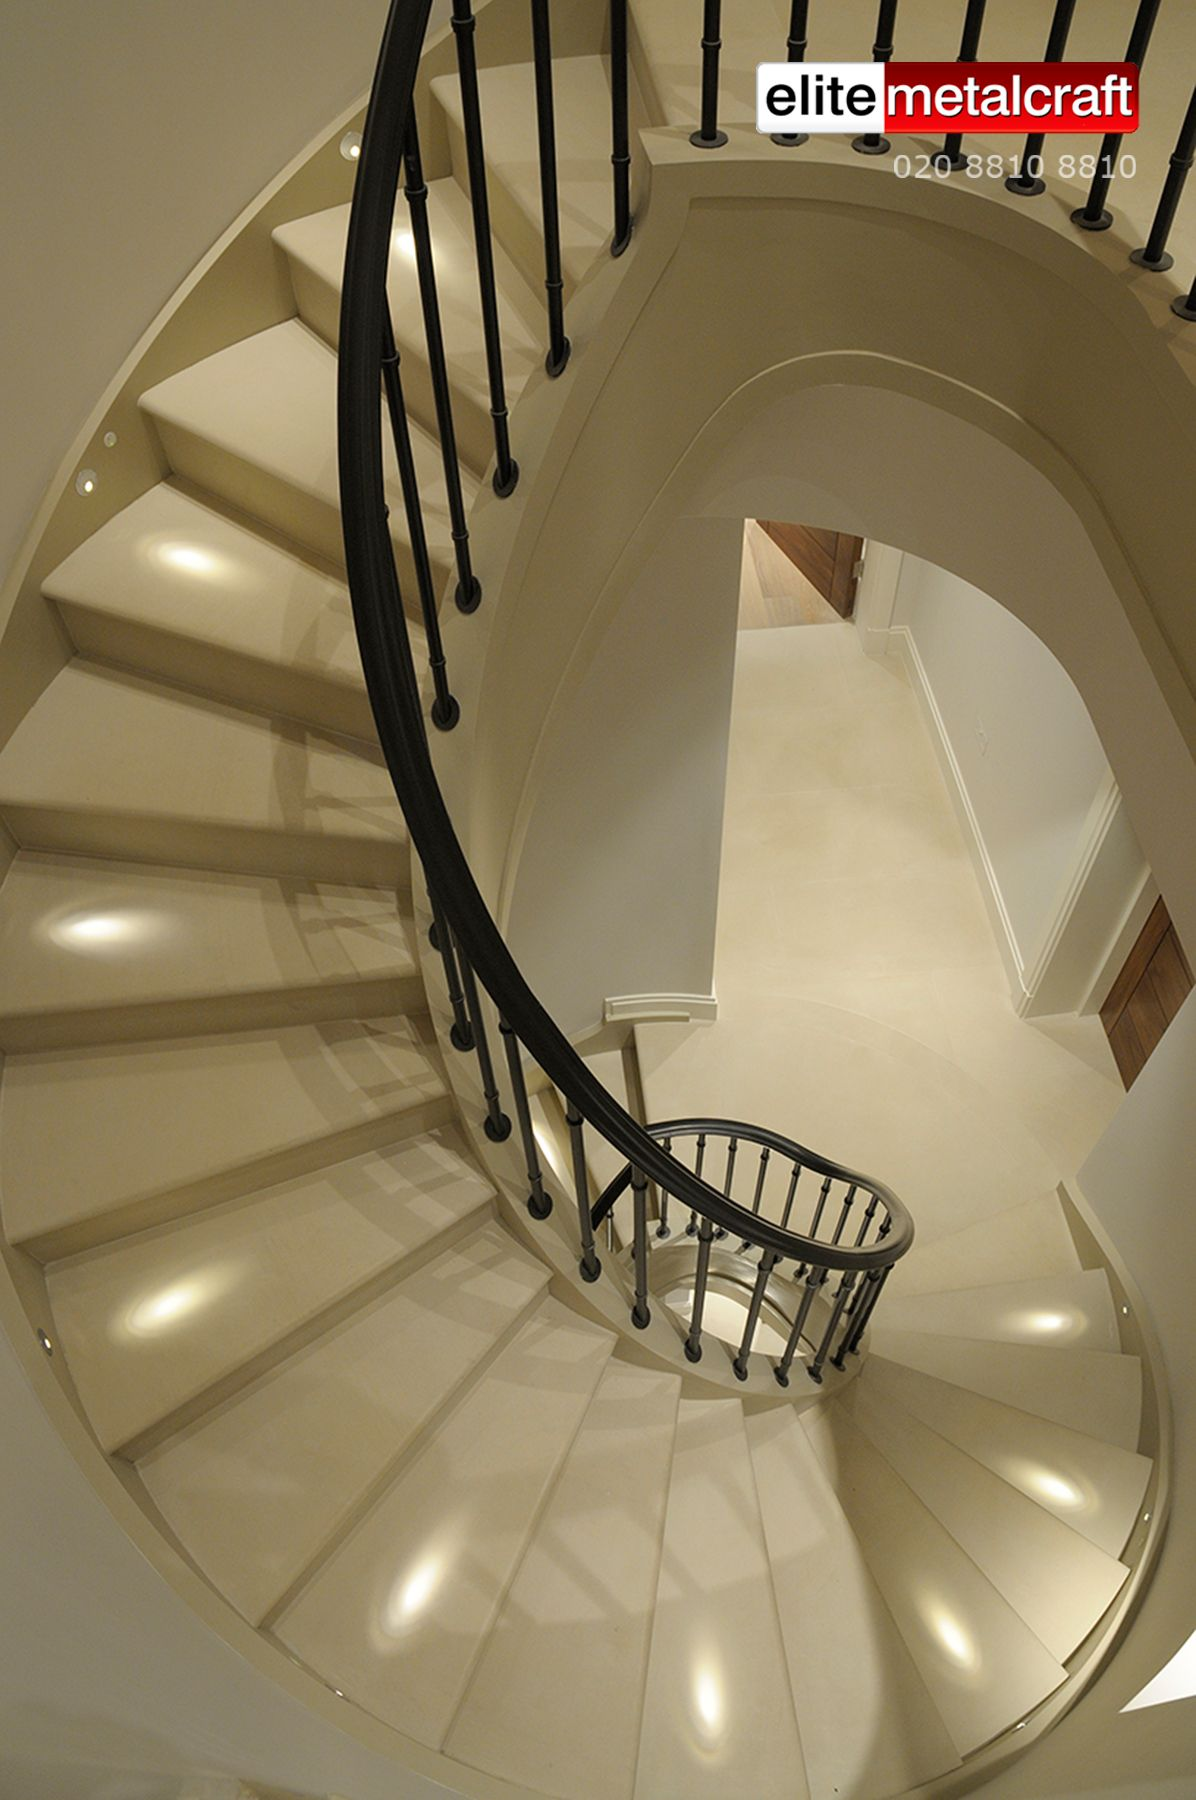 This beautifully designed Helical Staircase over 6 floors in the heart of London's fashionable West End   is the epitome of elegance and a testimony to exceptional skills and craftsmanship that is the hallmark of   Elite Metalcraft.     It uses natural stone and beautifully crafted metalwork, finished to a high standard to enhance this luxurious house in Kensington.